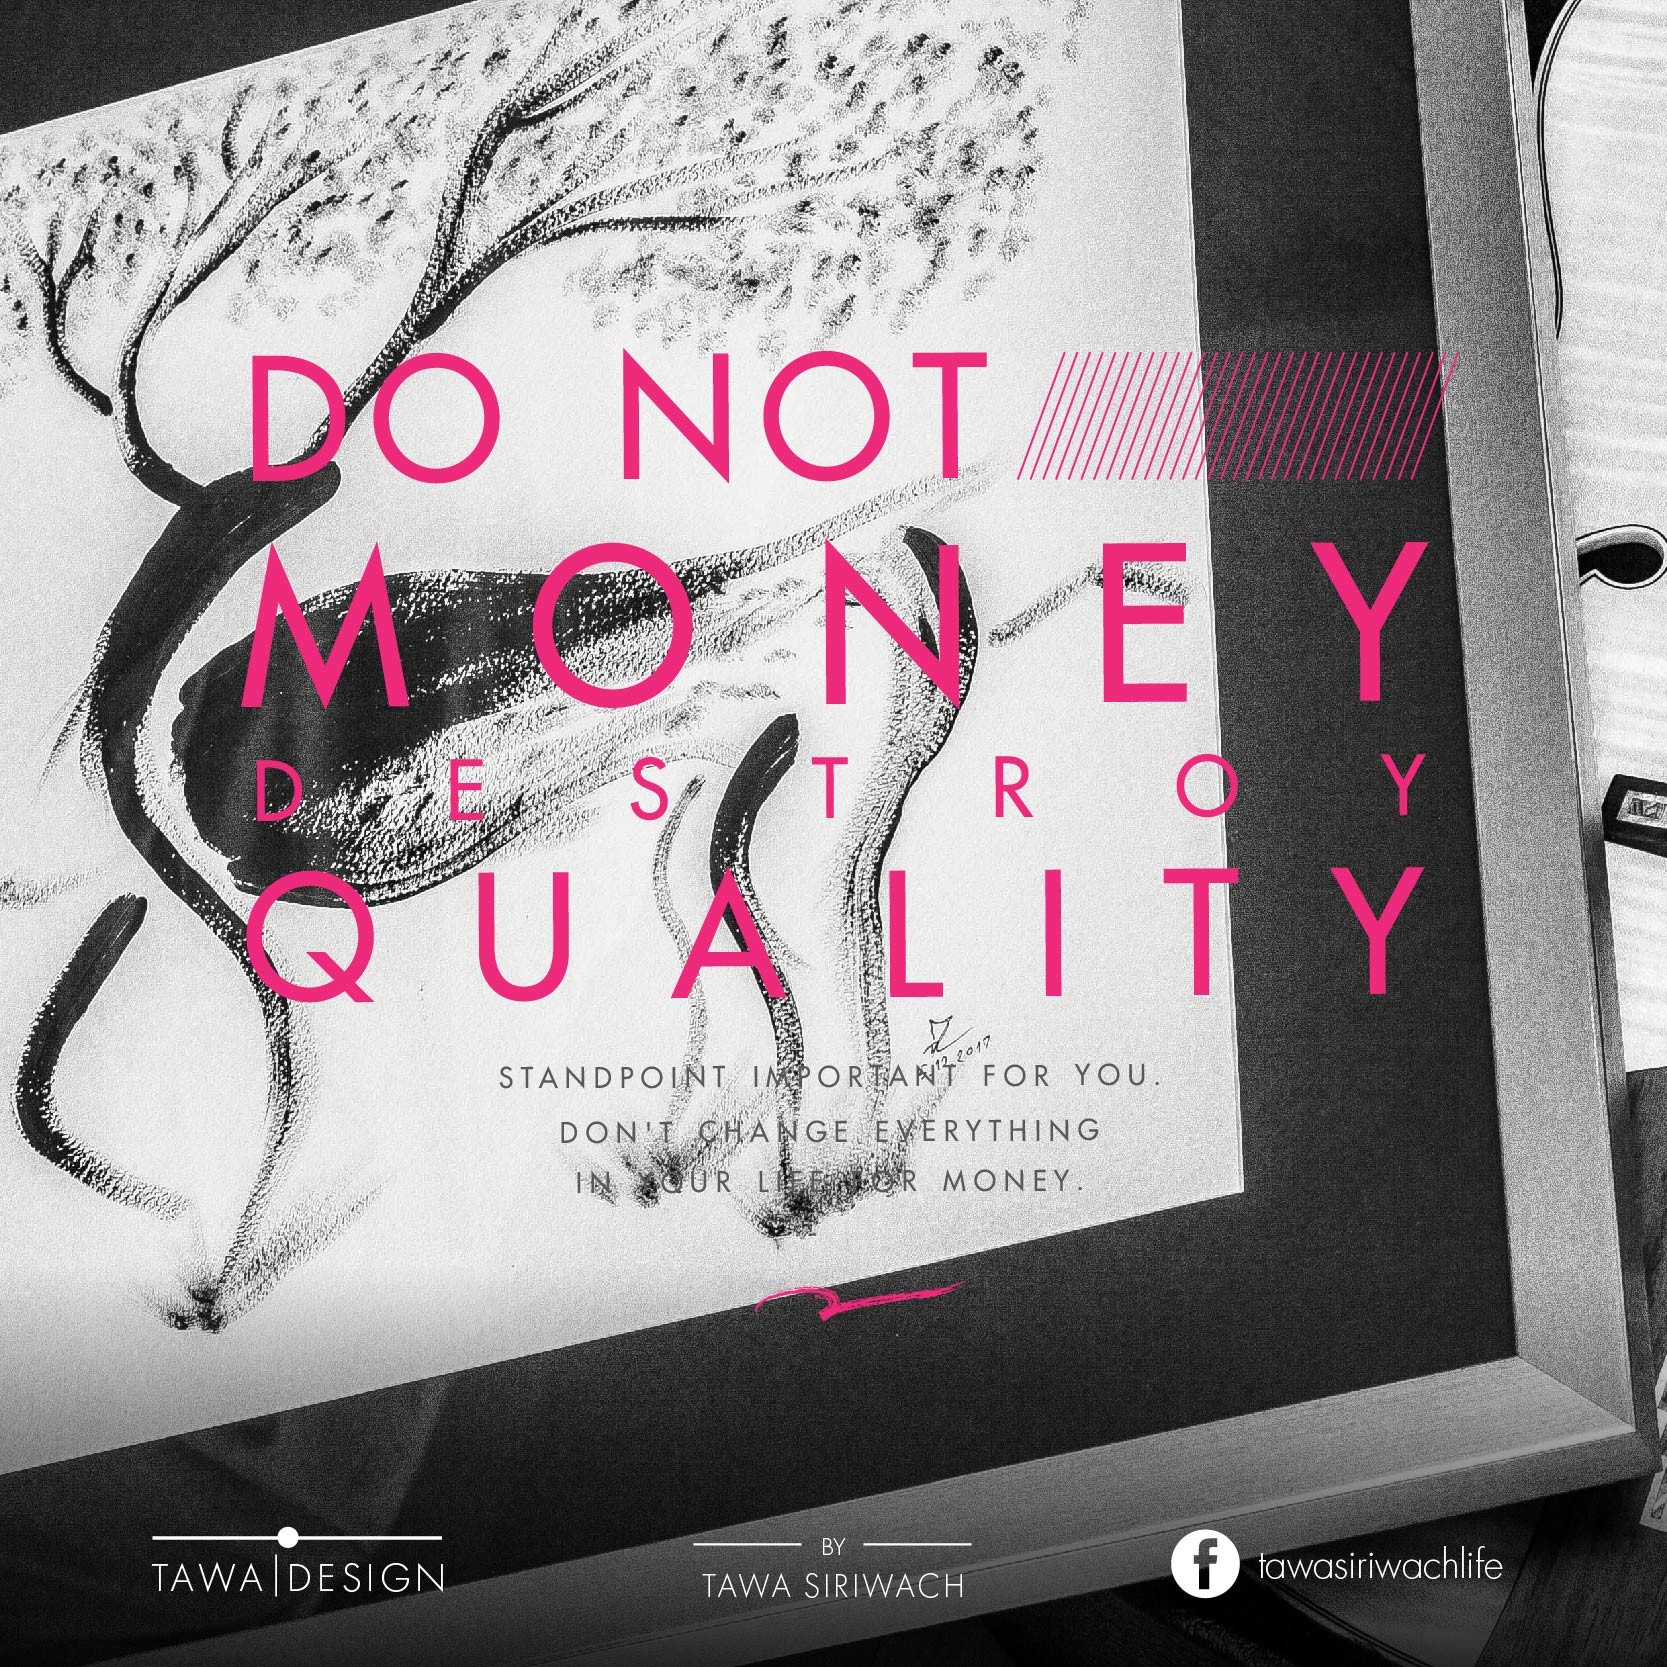 Do not money destroy the quality of your work. You will be lost your identity. Standpoint important for you. Don't change everything in your life for money. - Tawa Siriwach -